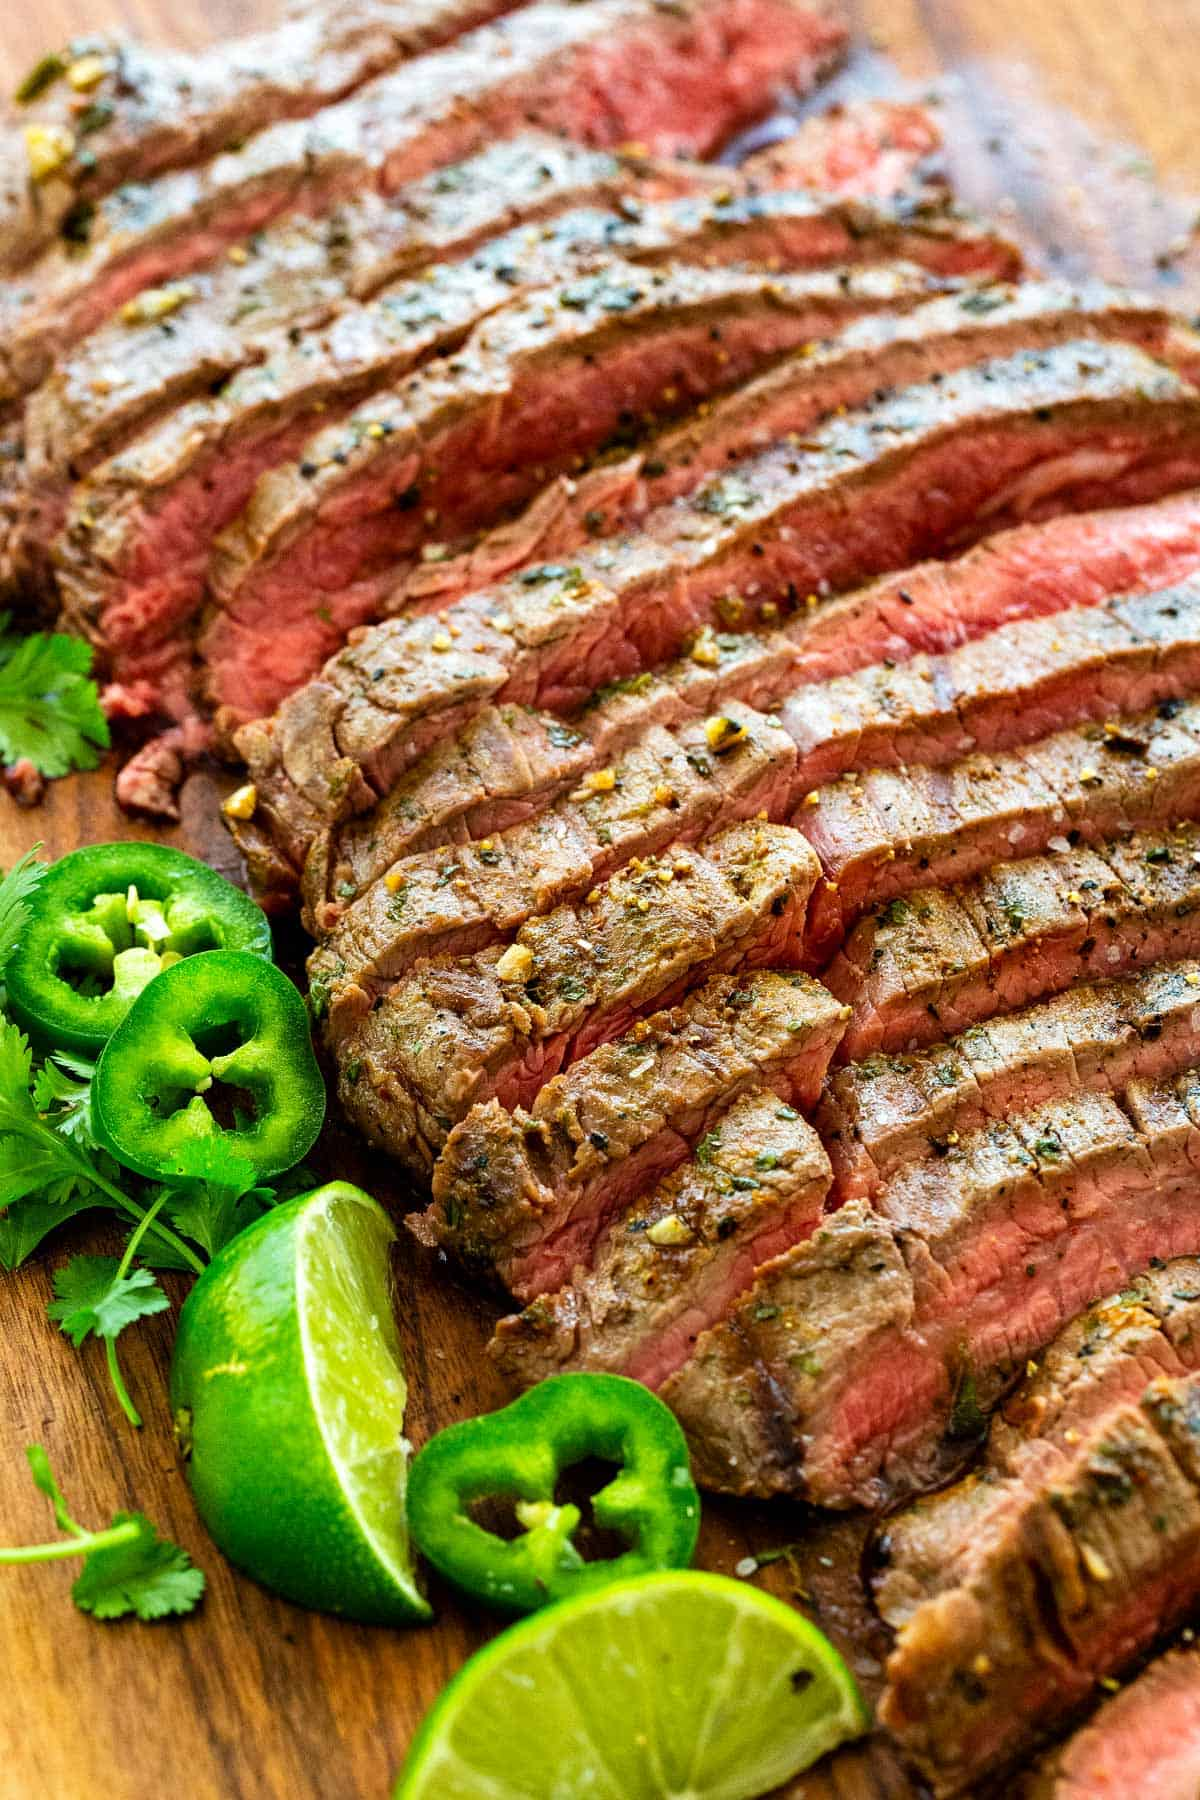 Carne asada recipe with a special marinade of citrus juices, garlic, jalapeno, cumin, and chili powder. Chop it up for tacos, or add it to a salad! #carneasada #steak #mexican #steaktacos